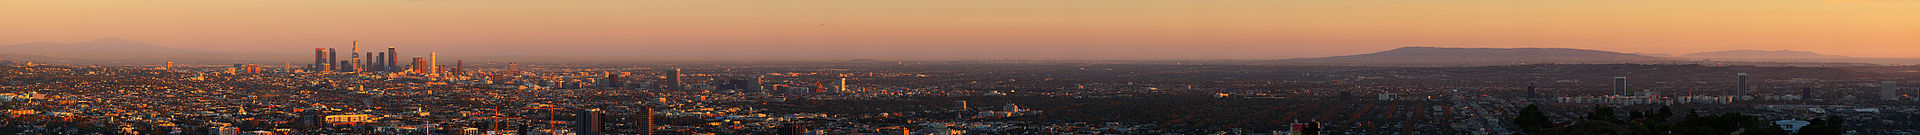 1920px-Los_angeles_mountains_to_ocean_pano.jpg